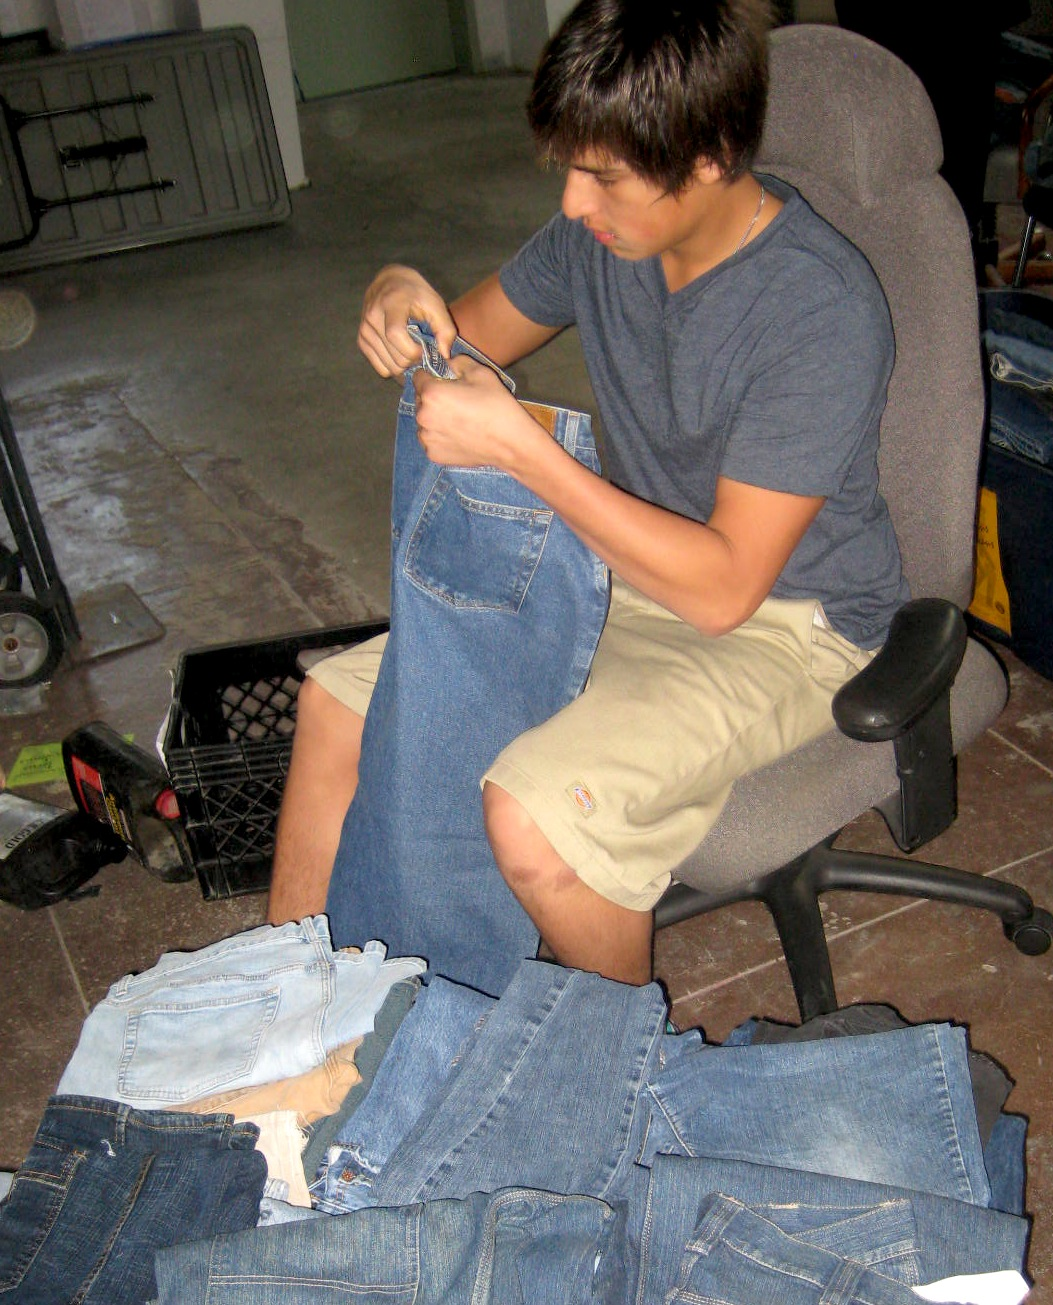 Collect jeans for homeless teens